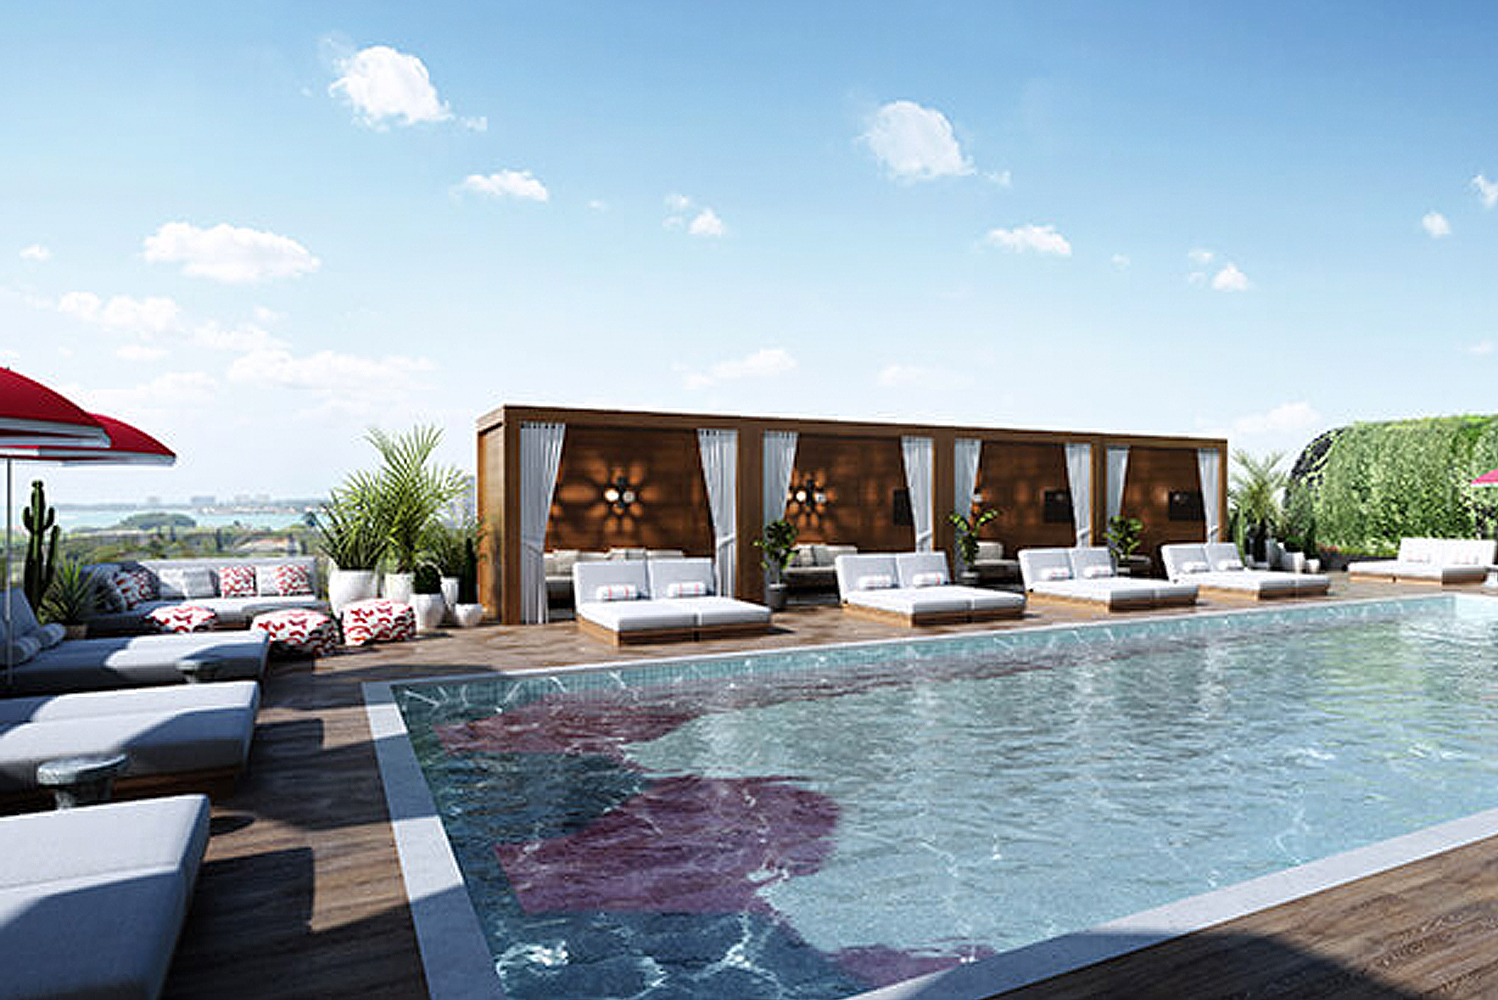 Virgin Hotels Dallas is being developed with Bill Hutchinson of Dunhill Partners and operated by Virgin Hotels.